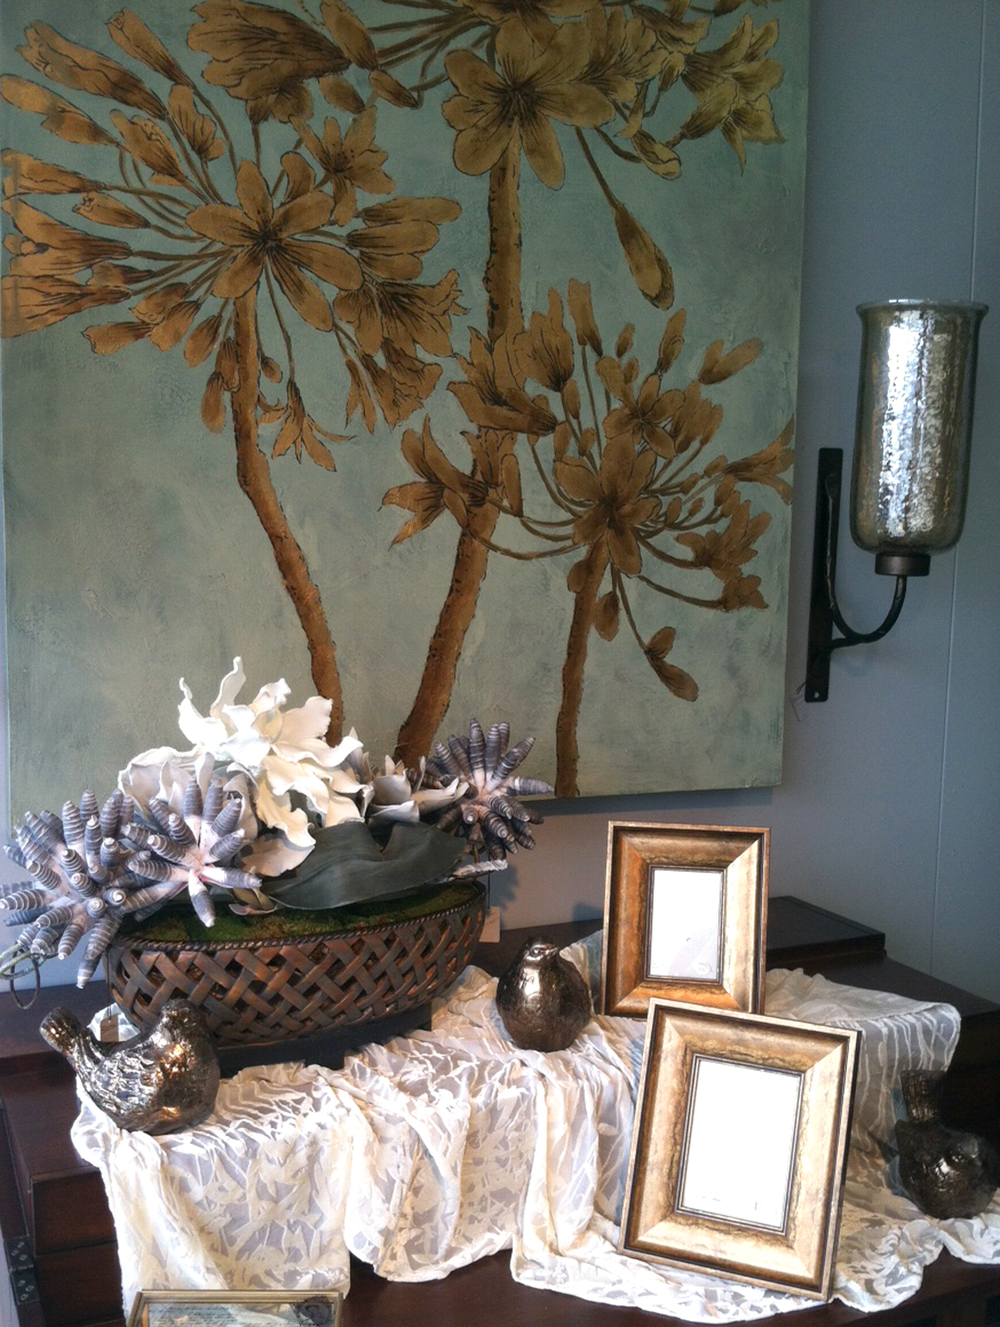 designers on staff assist you with the newest looks in accessories and interiors let us help you create your own unique style in framing and dcor